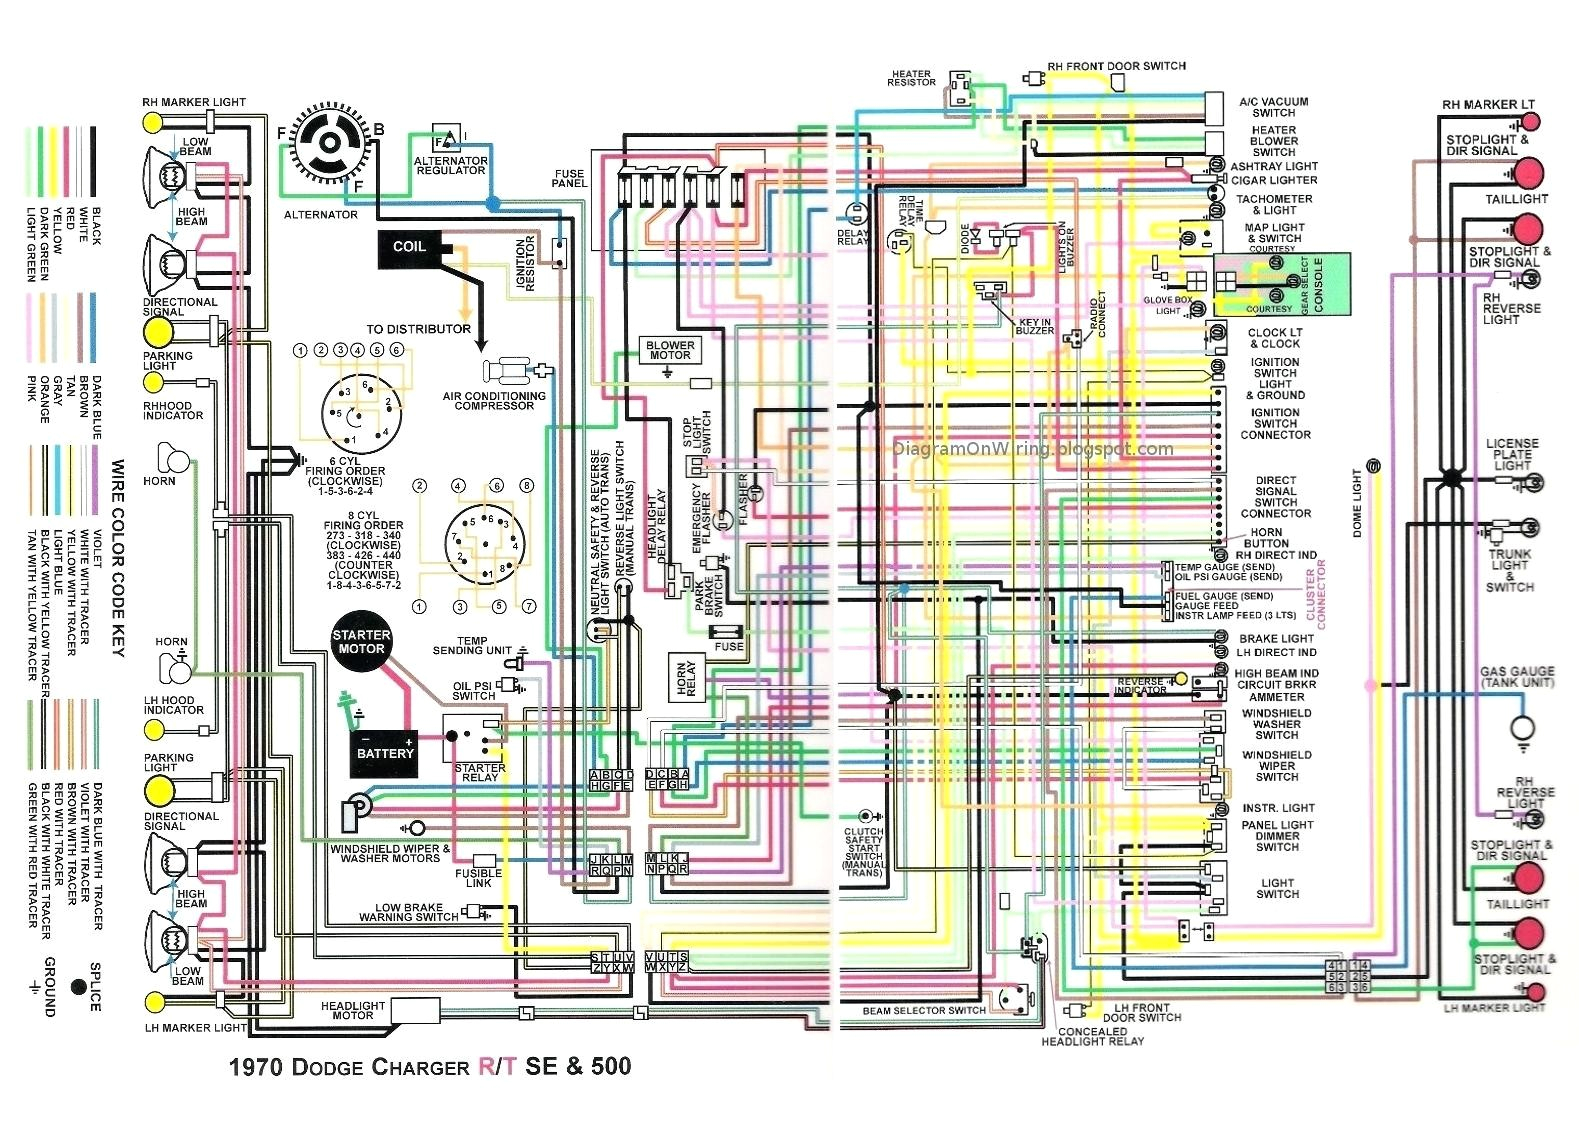 dodge charger wiring harness diagram wiring diagram expert 1968 dodge charger firewall wiring harness diagram